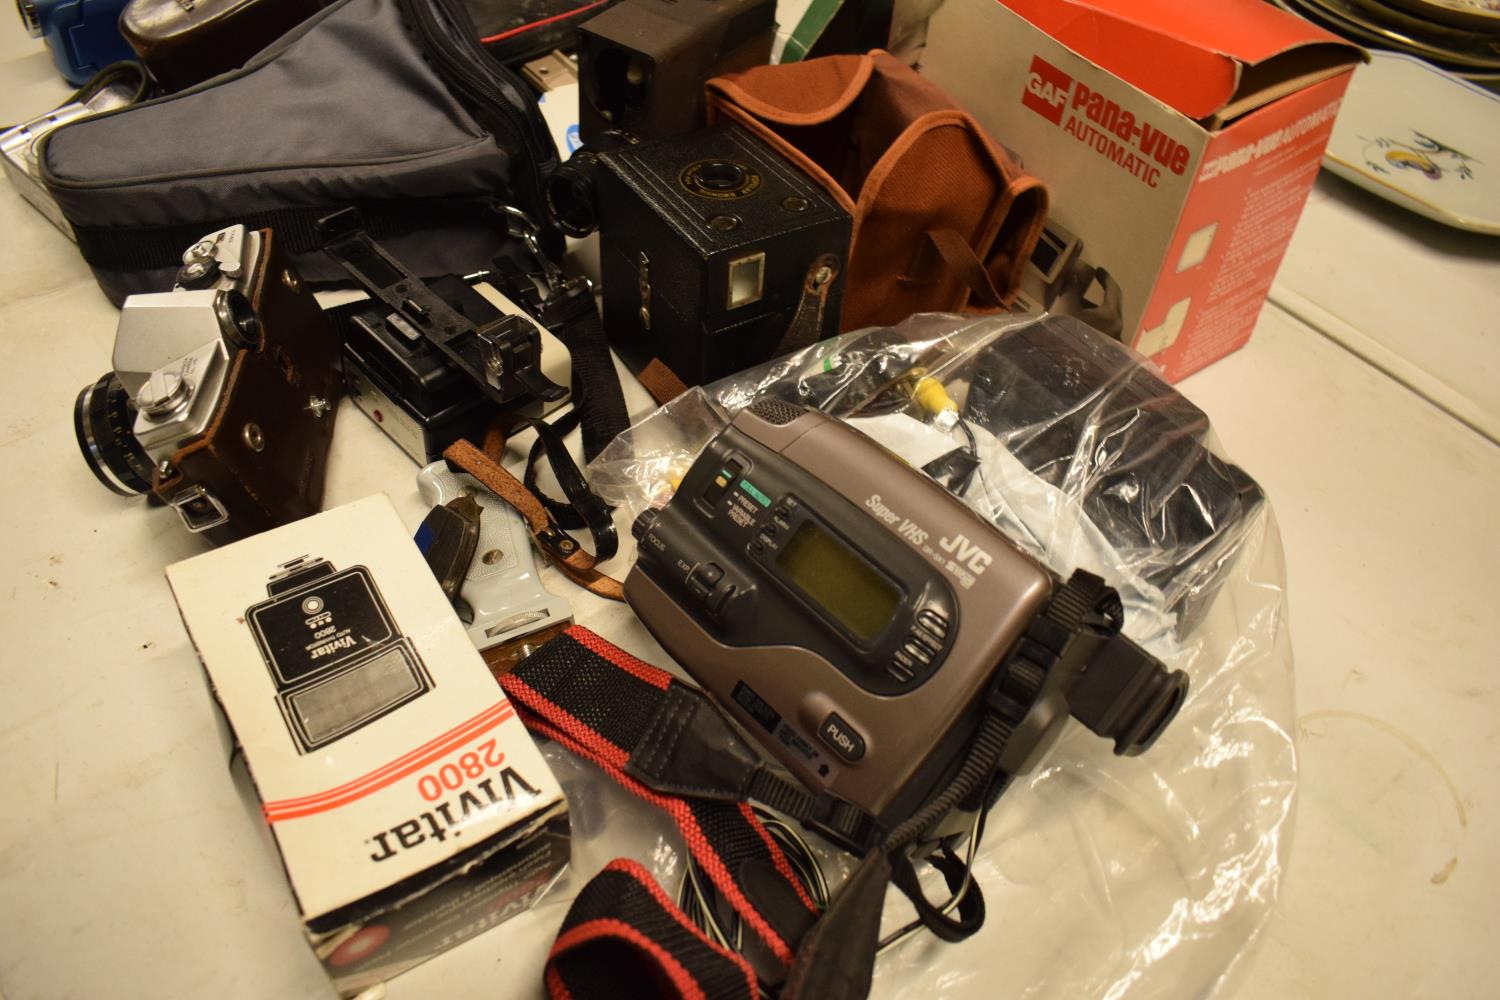 A mixed collection of cameras and accessories to include Kodak, Canon, JVC etc Condition is mixed. - Image 2 of 7